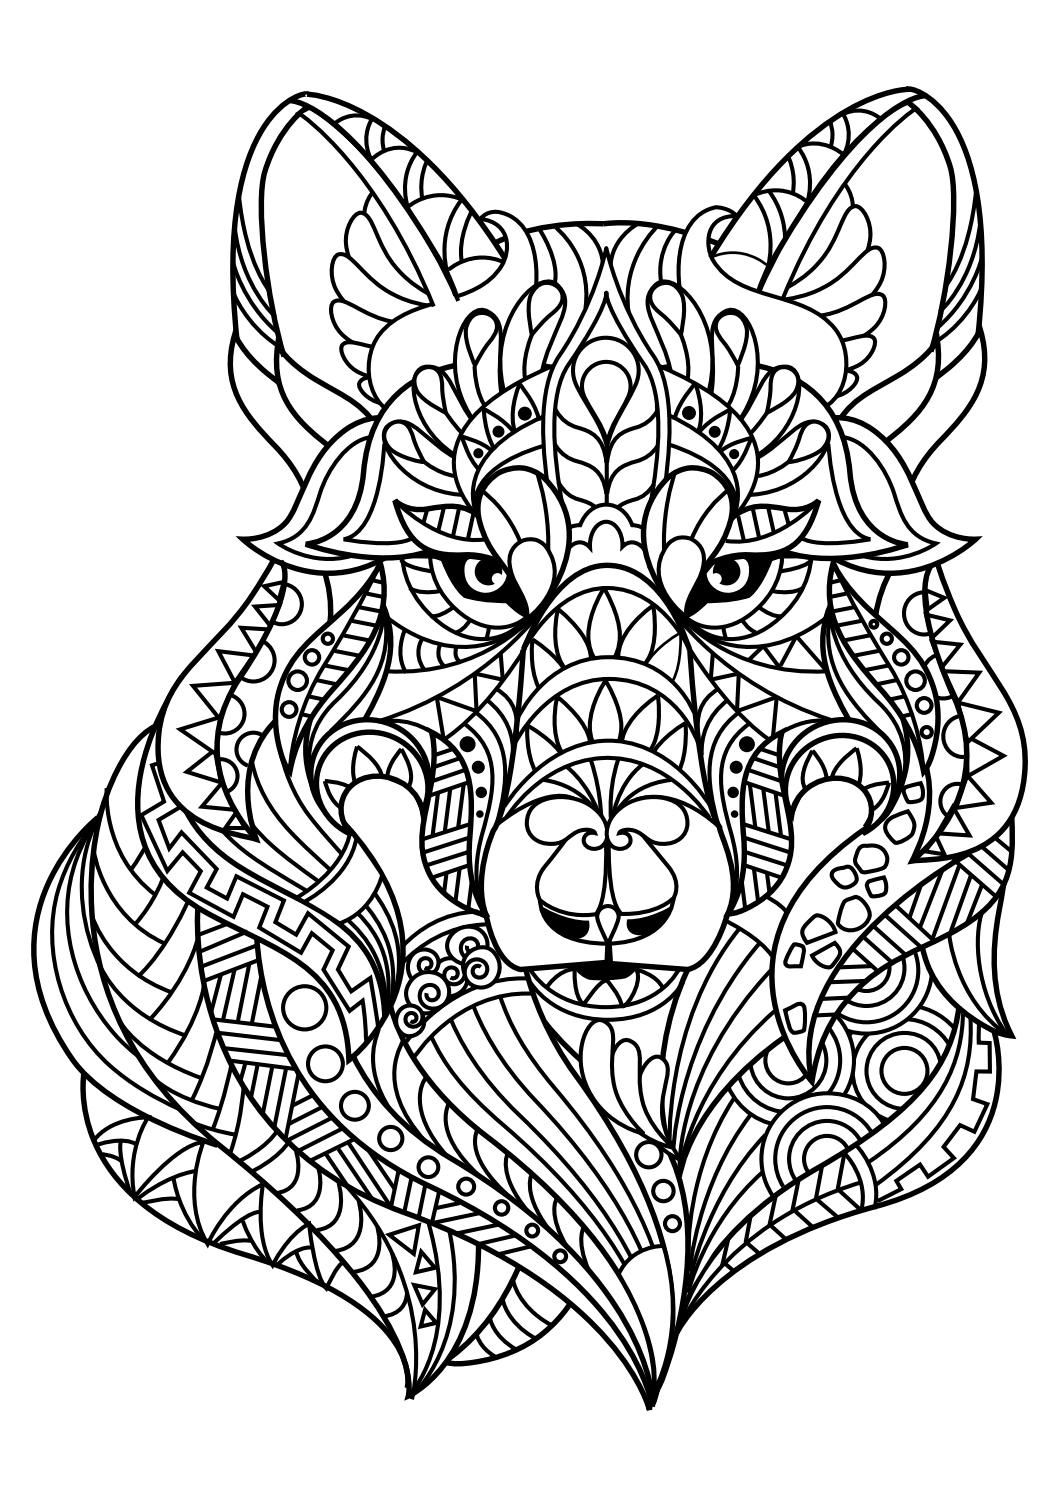 Animal Coloring Pages Pdf Animal Coloring Pages Horse